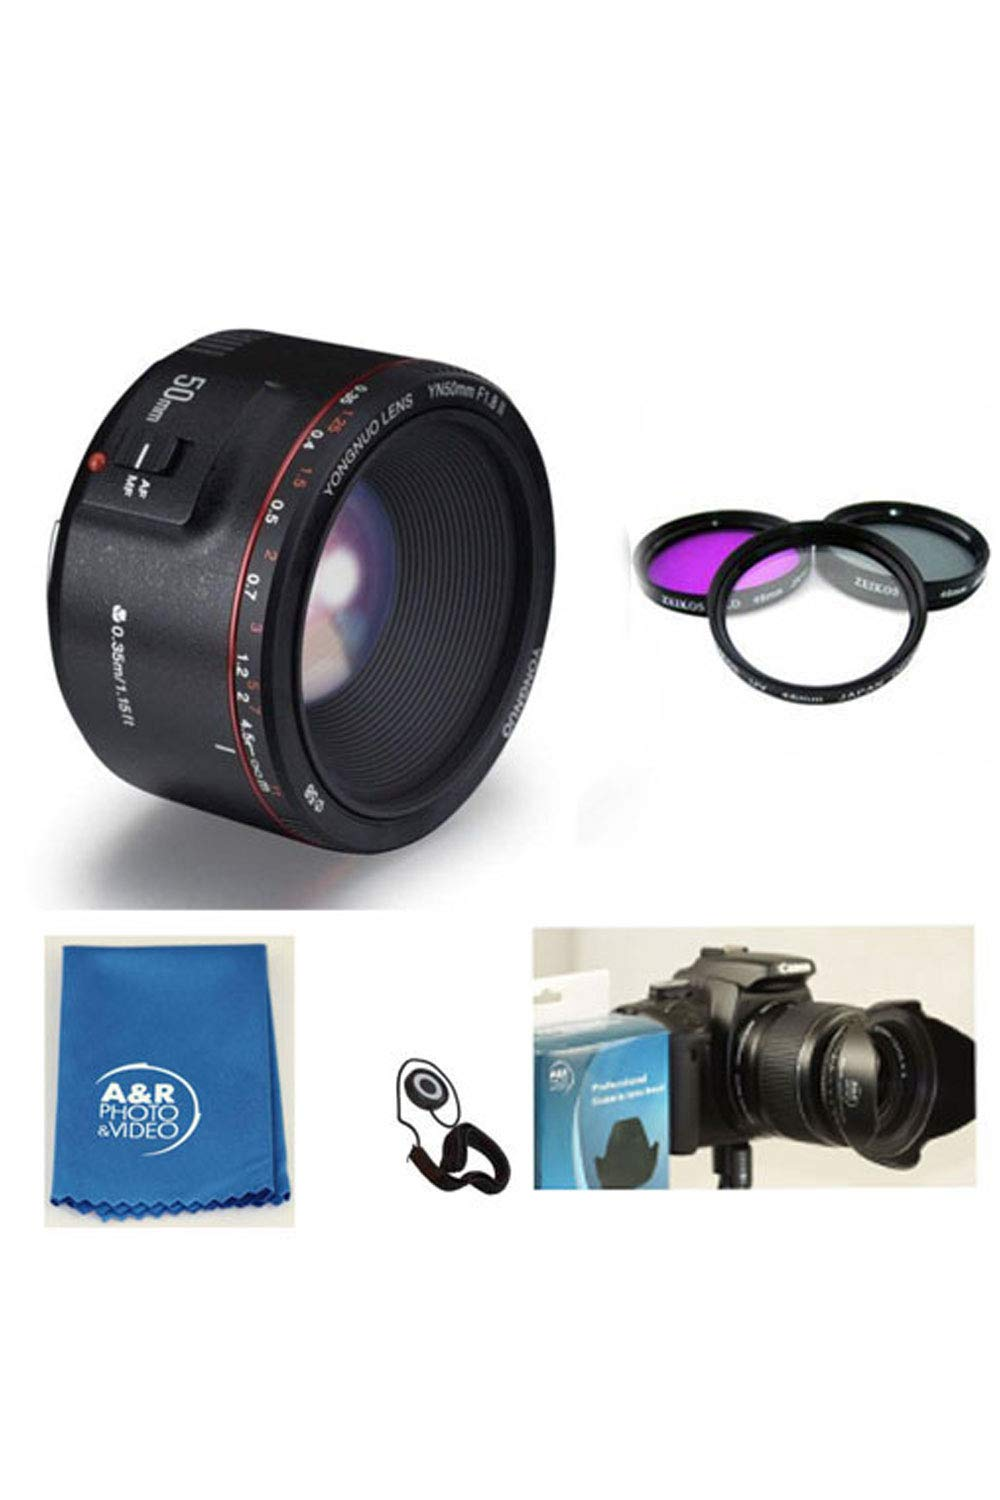 New Yongnuo EF 50mm II F1.8 Standard Prime Lens Kit with Filter Kit, Hood, Case for Canon T7I 77D 80D 70D T6 T6I 5D 6D 7D by YONGNUO